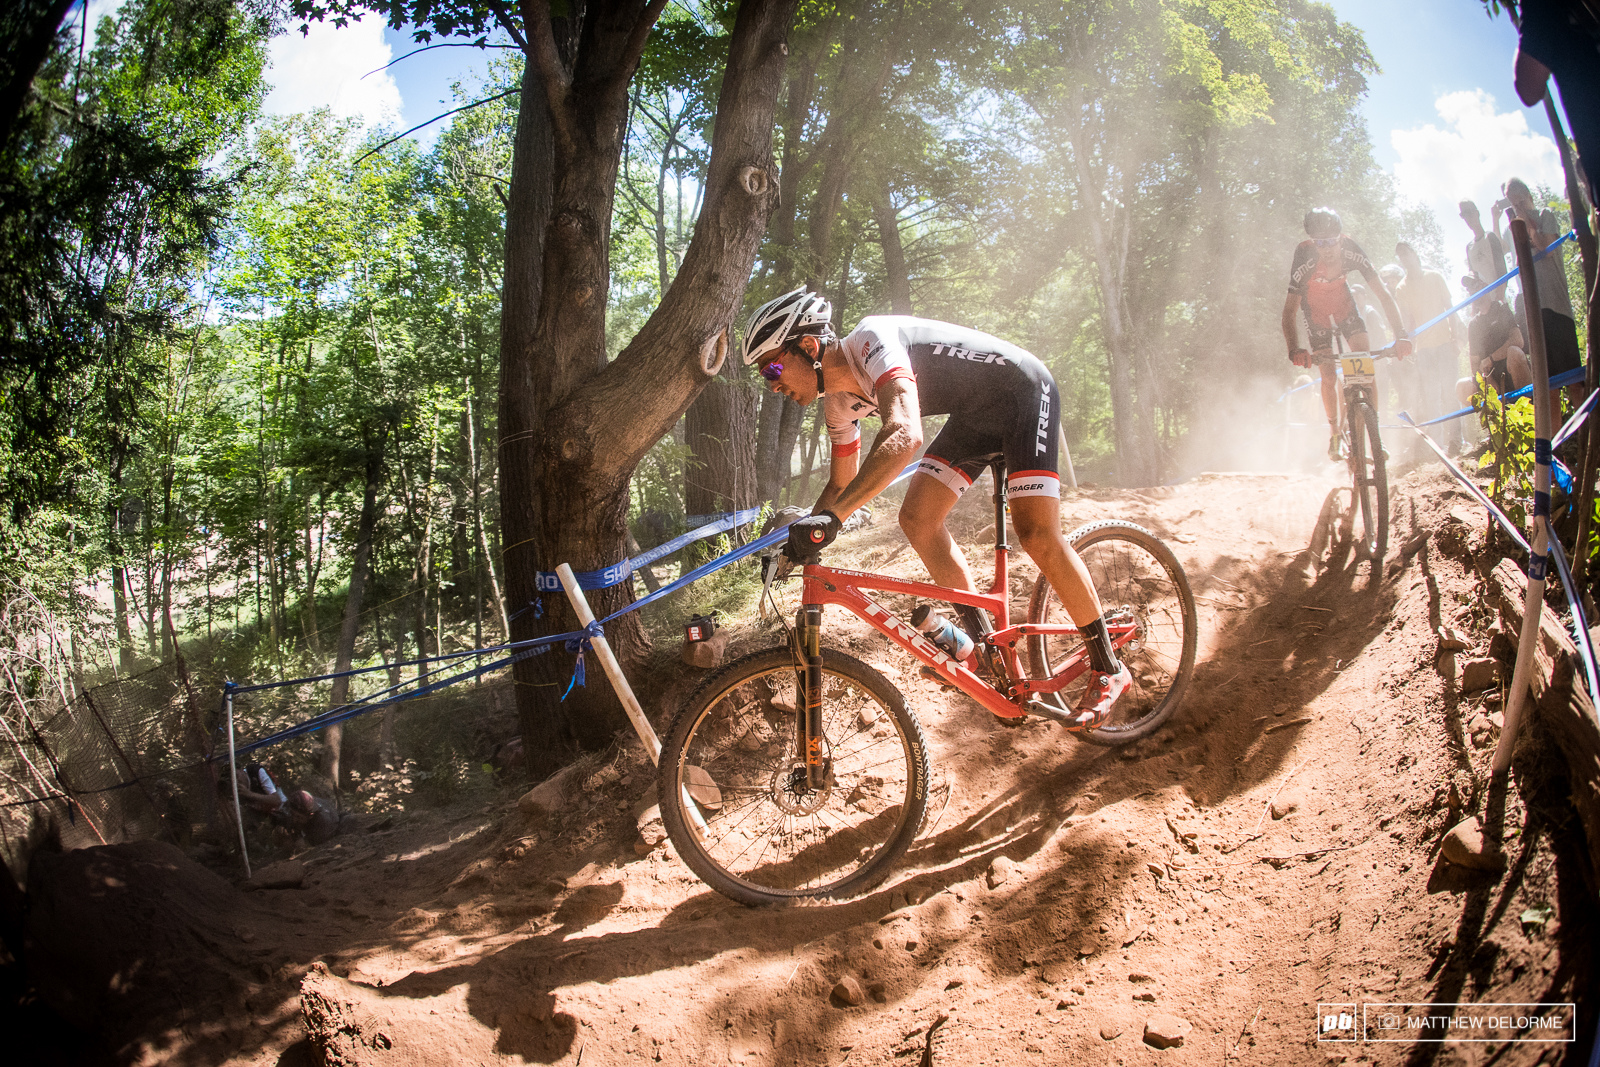 Sergio Mantecon rode to his first podium since Albstadt when he was on Wild Wolf. The Spaniard has been making steady gains all season and was elated with a fourth place finish.